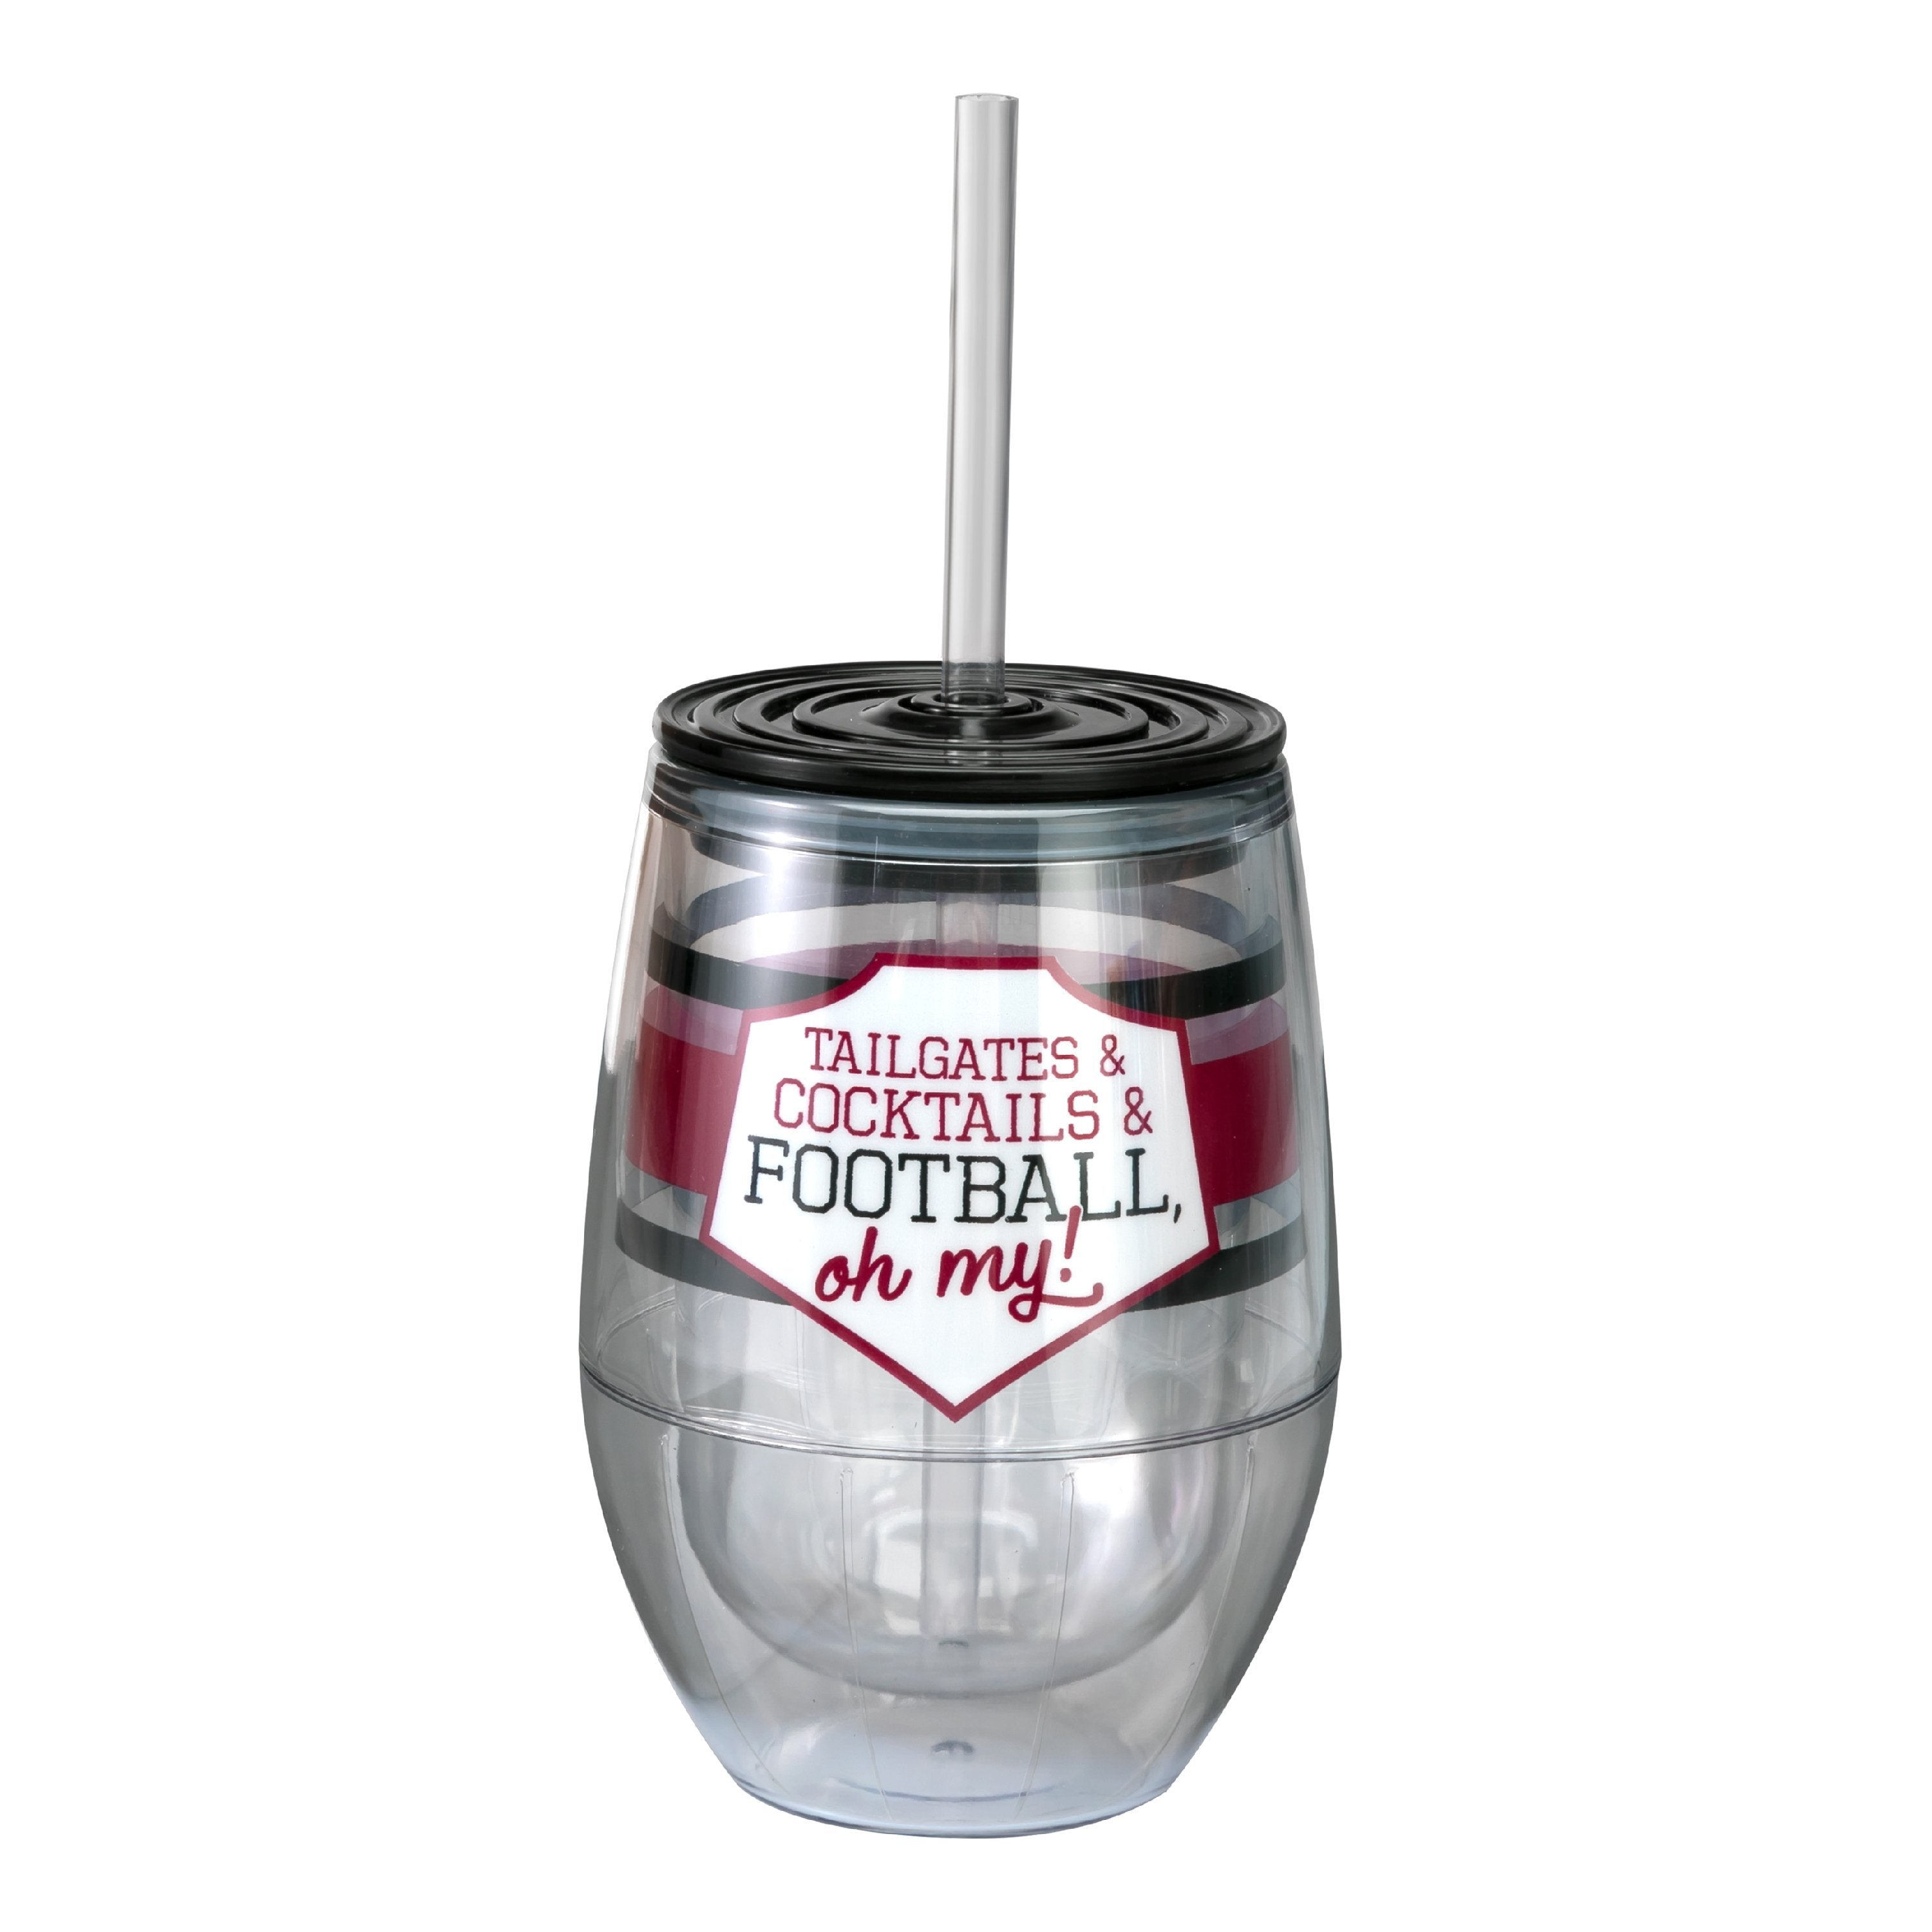 "Maroon/Black 12oz Acrylic Stemless Wine Cup - ""Tailgates & Cocktails & Football, Oh My!"""